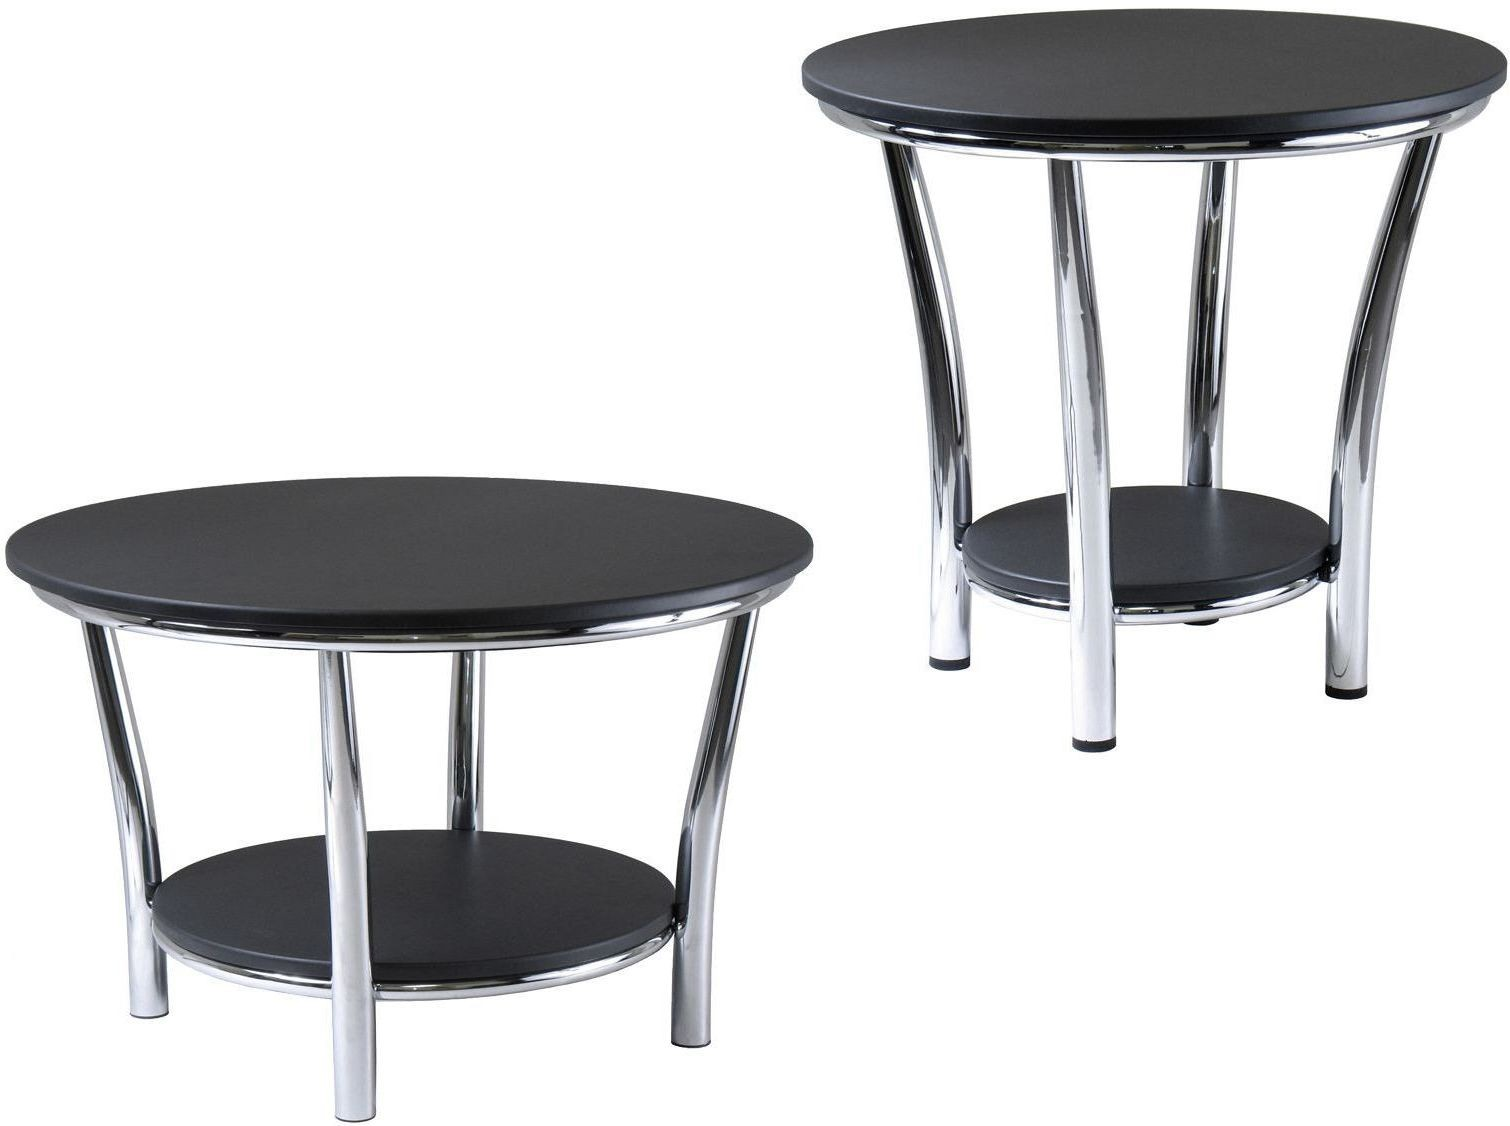 Maya black top round end table from winsomewood coleman for Black round end table